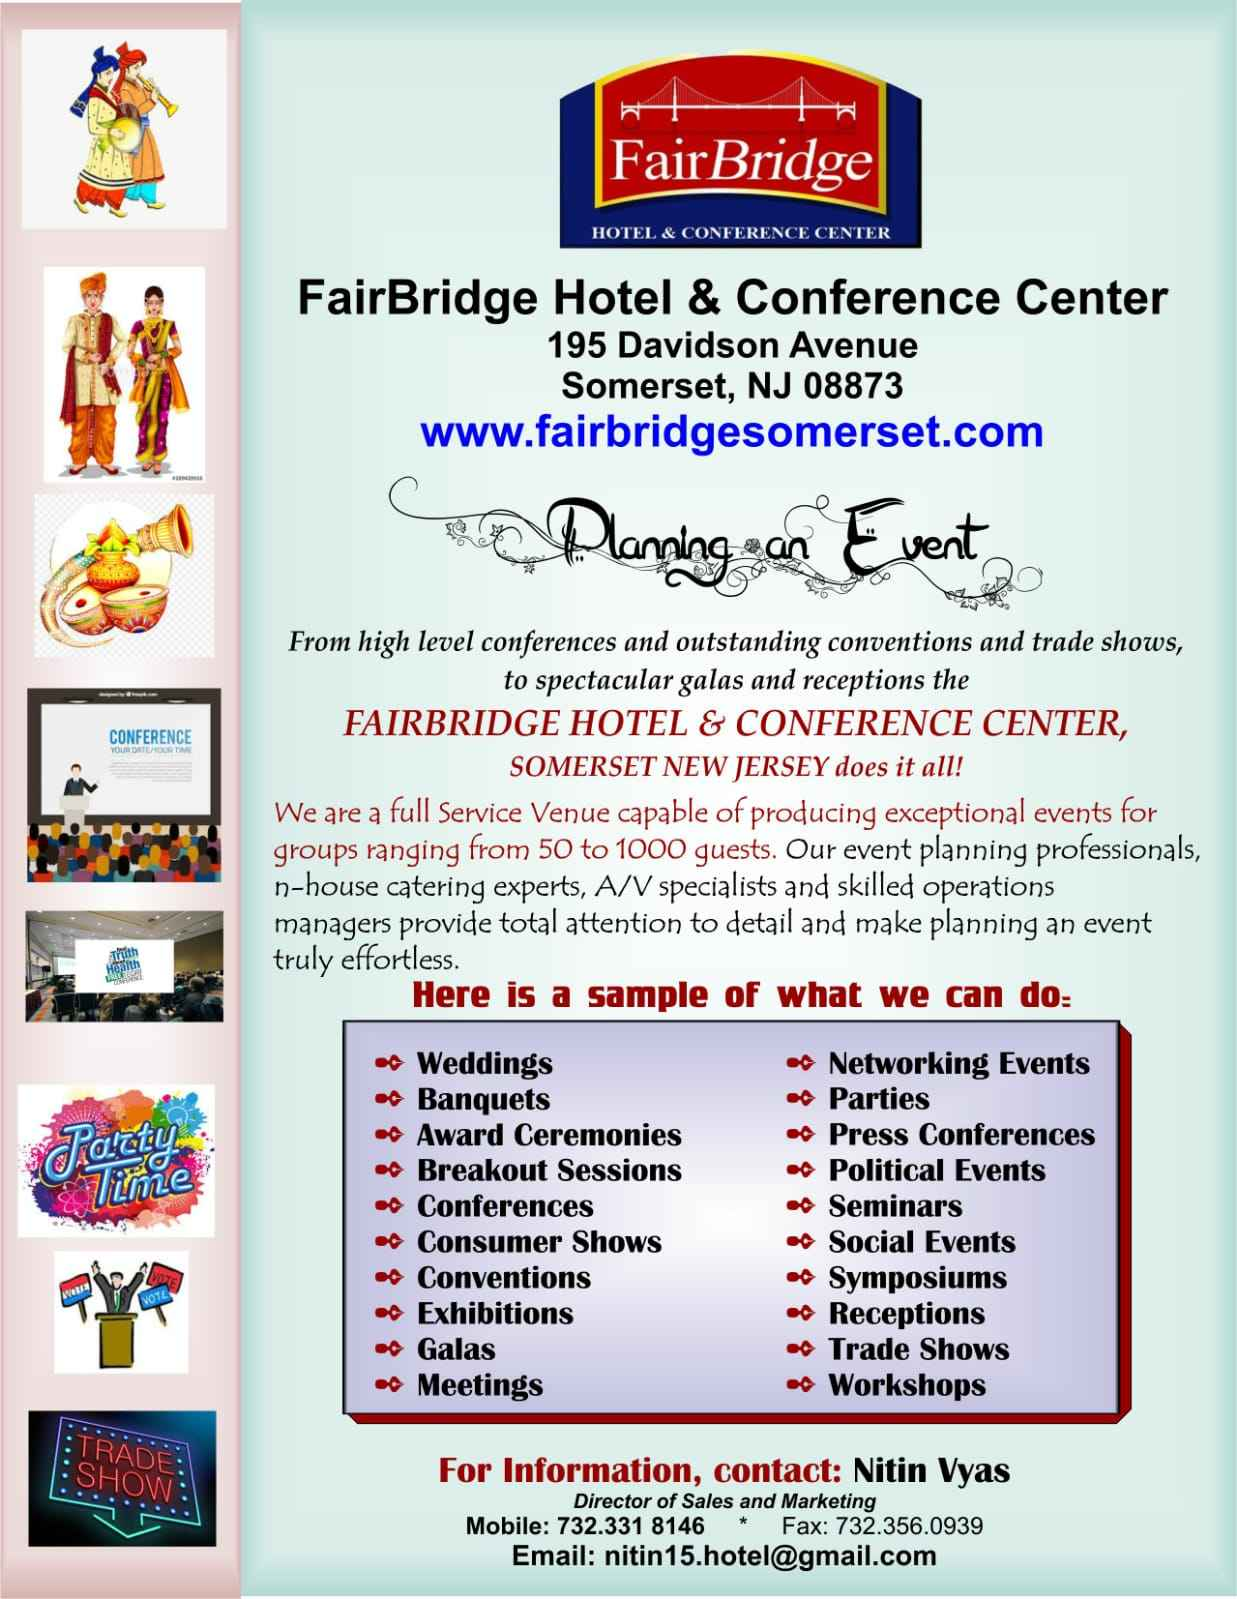 Planning an Event - FairBridge Hotel & Conference Center